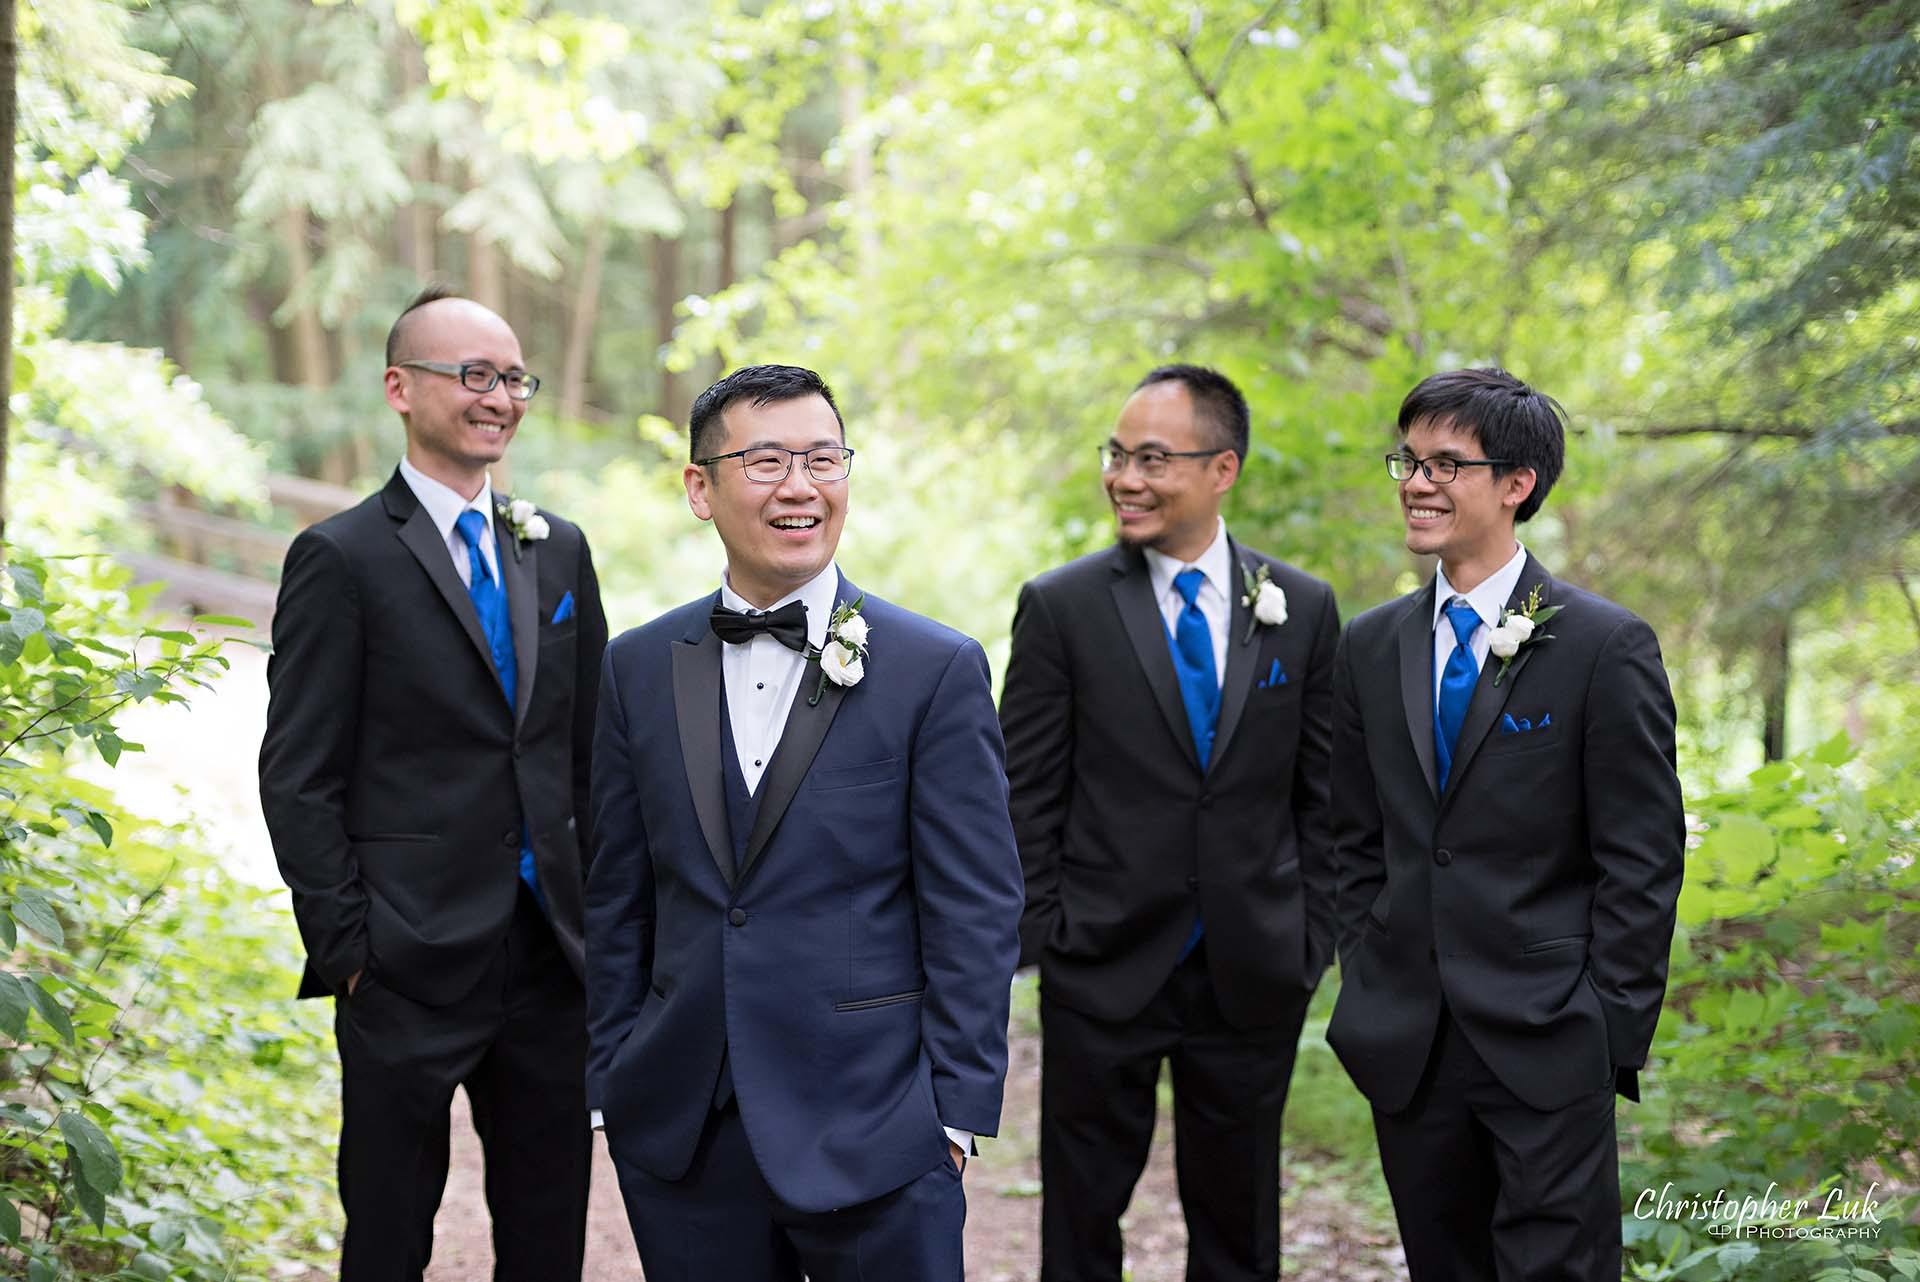 Christopher Luk Toronto Christian Community Church Kleinburg McMichael Art Gallery Presidente Banquet Hall Vaughan Wedding Photographer Groom Best Man Groomsmen Natural Candid Photojournalistic Forest Woods Wooded Area Tall Trees Cool Boy Band Album Cover Laugh Smile